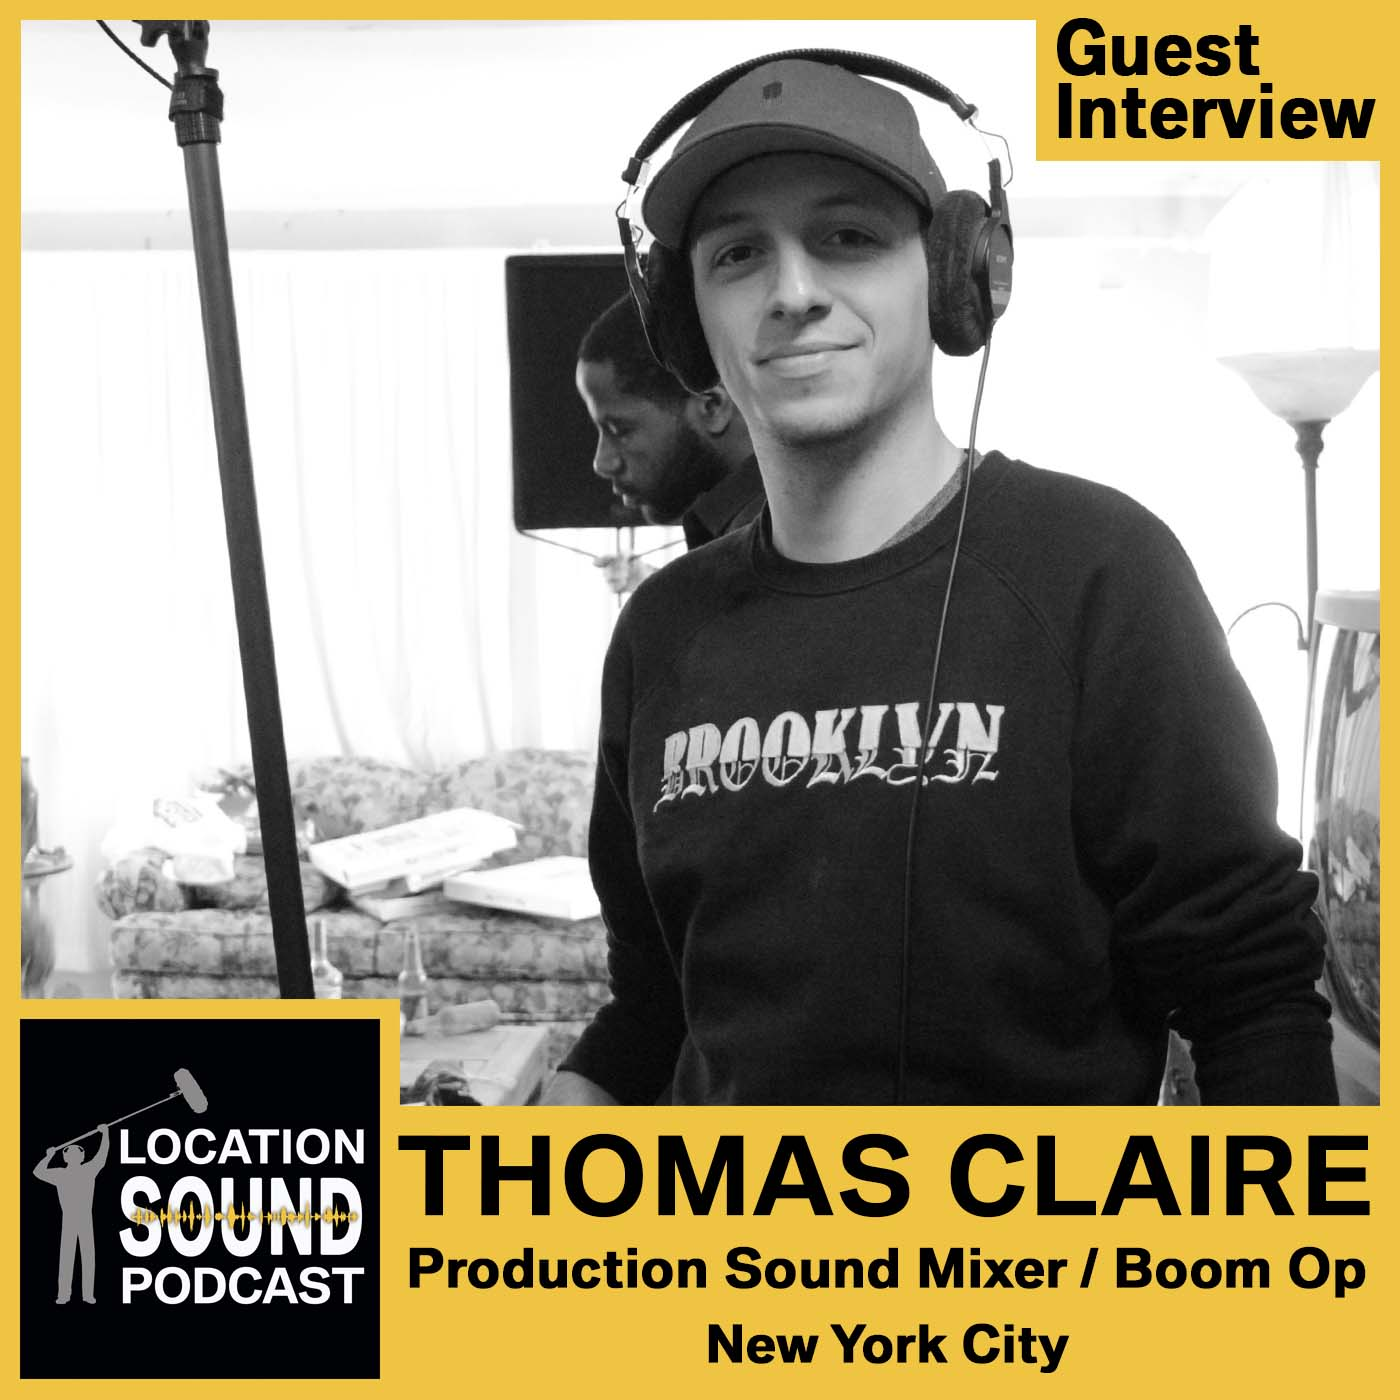 080 Thomas Claire - Production Sound Mixer based out of New York City